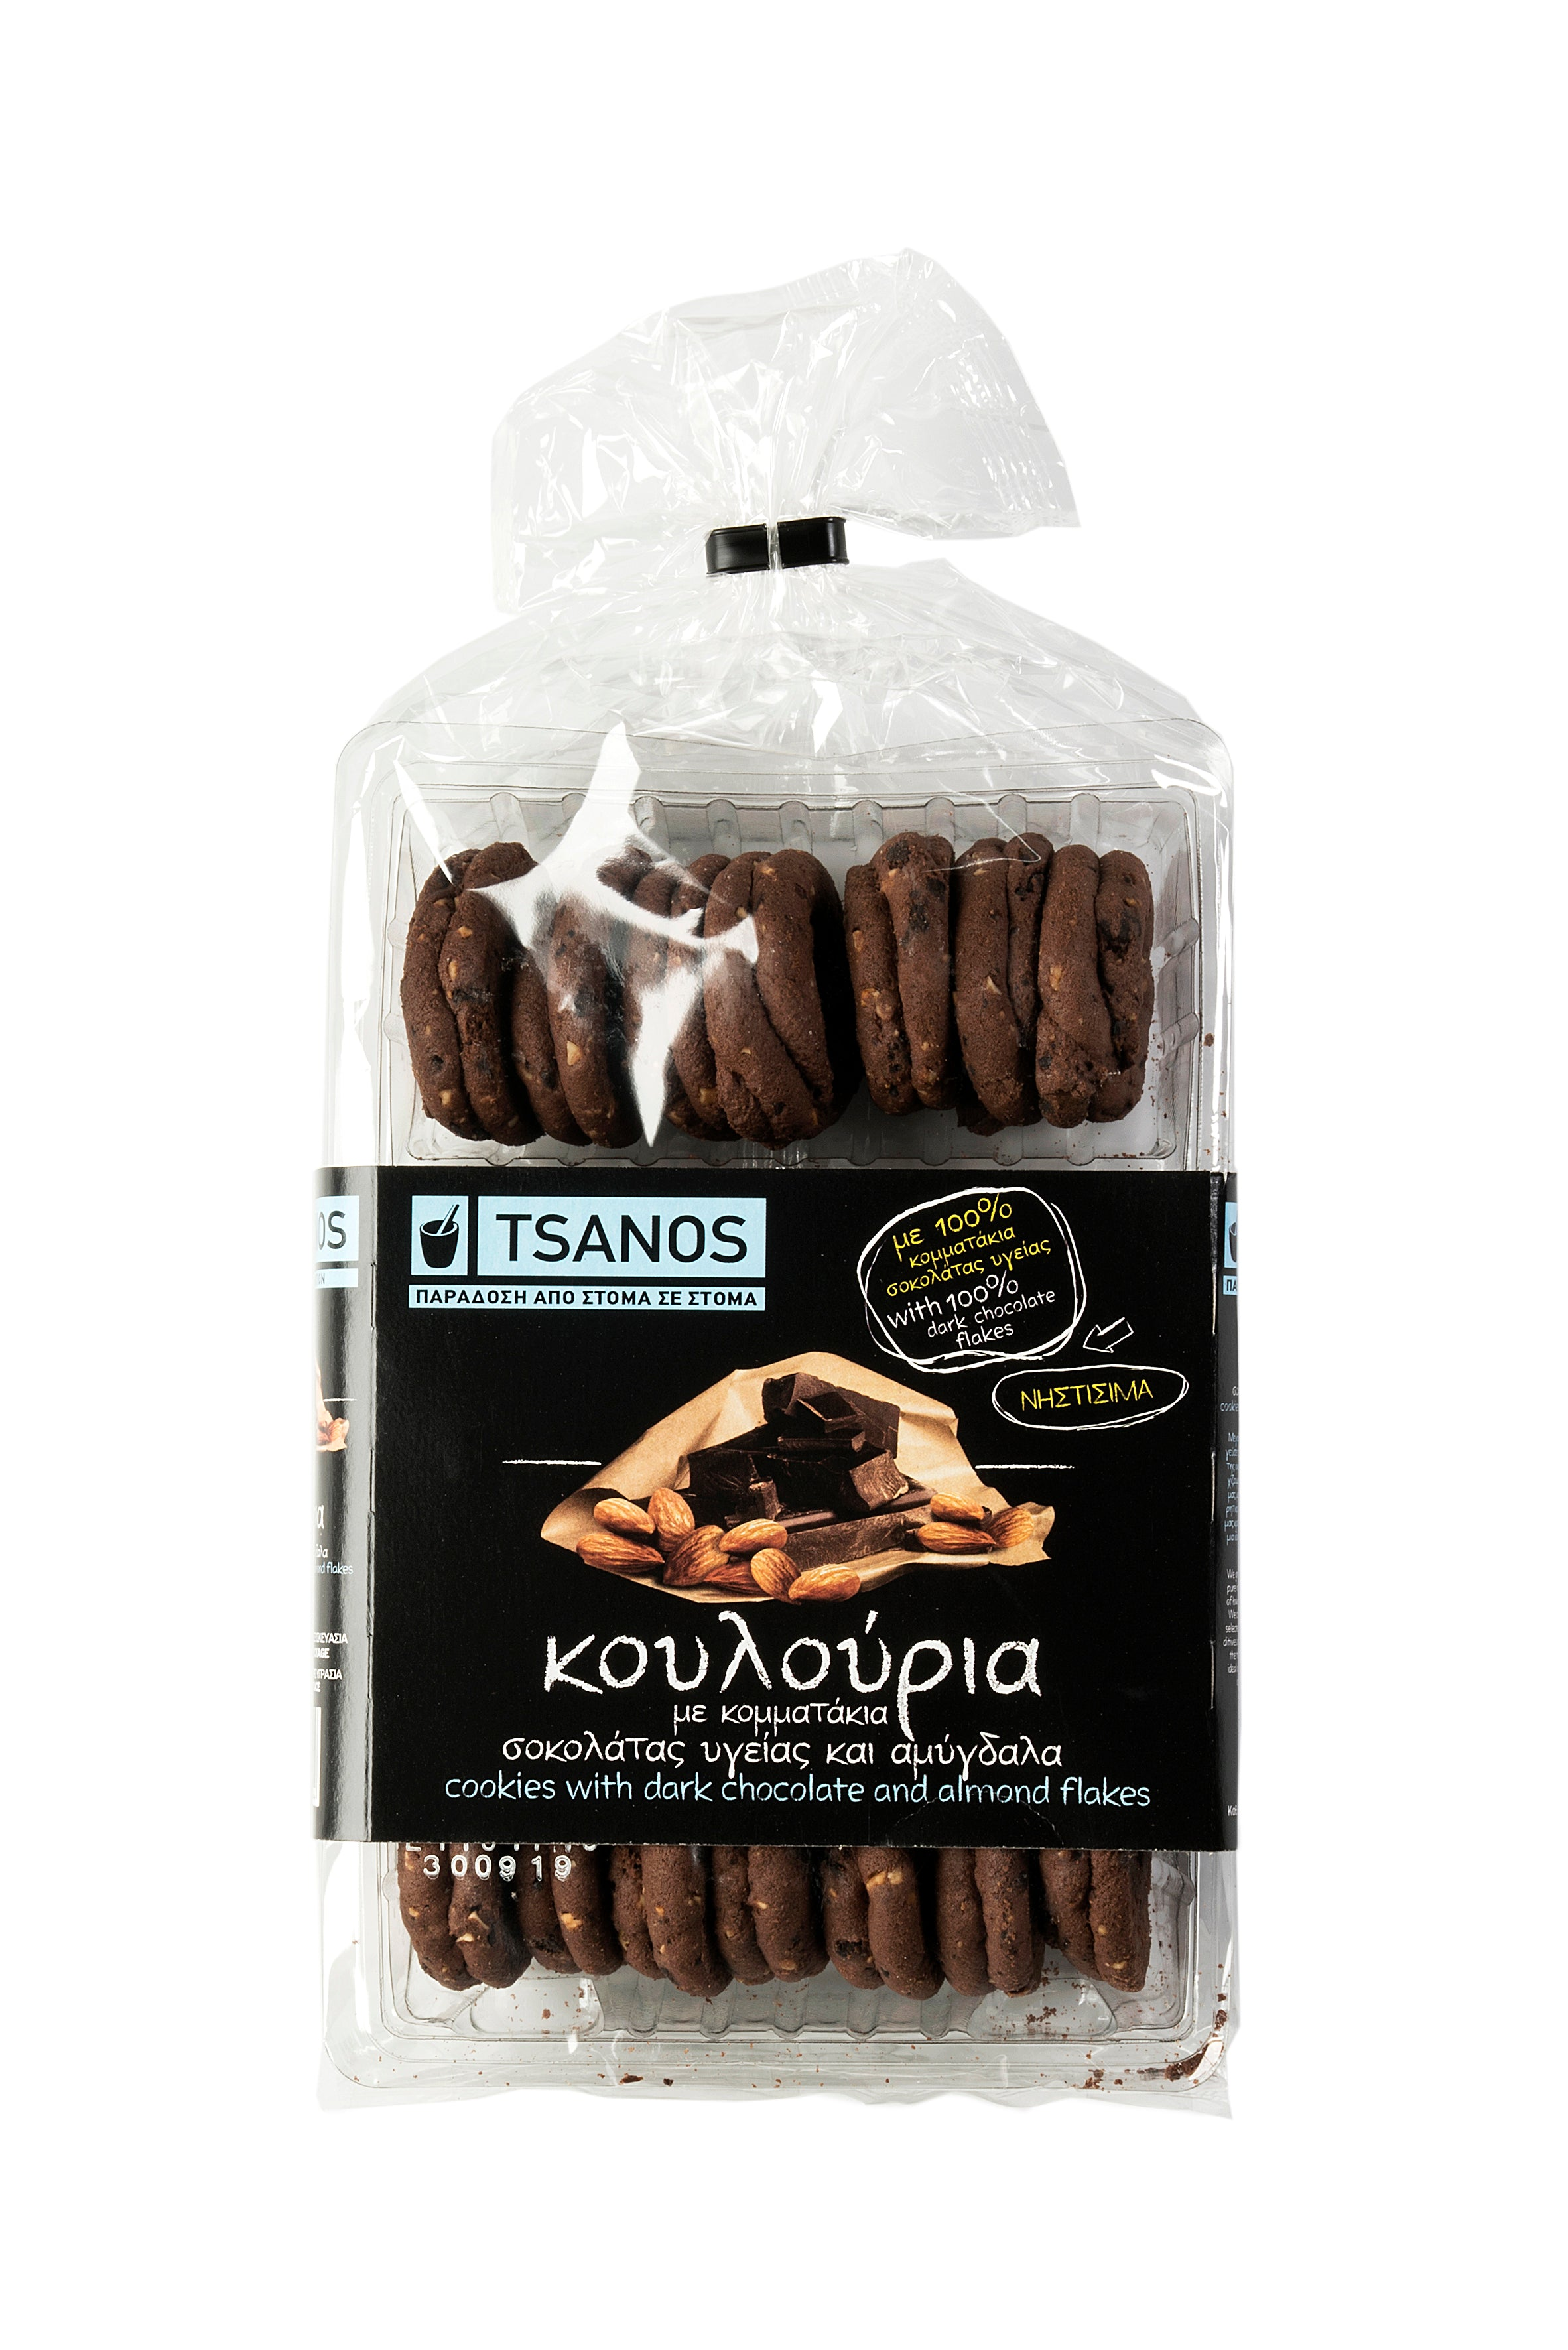 Tsanos Cookies with Dark Chocolate and Almond Flakes